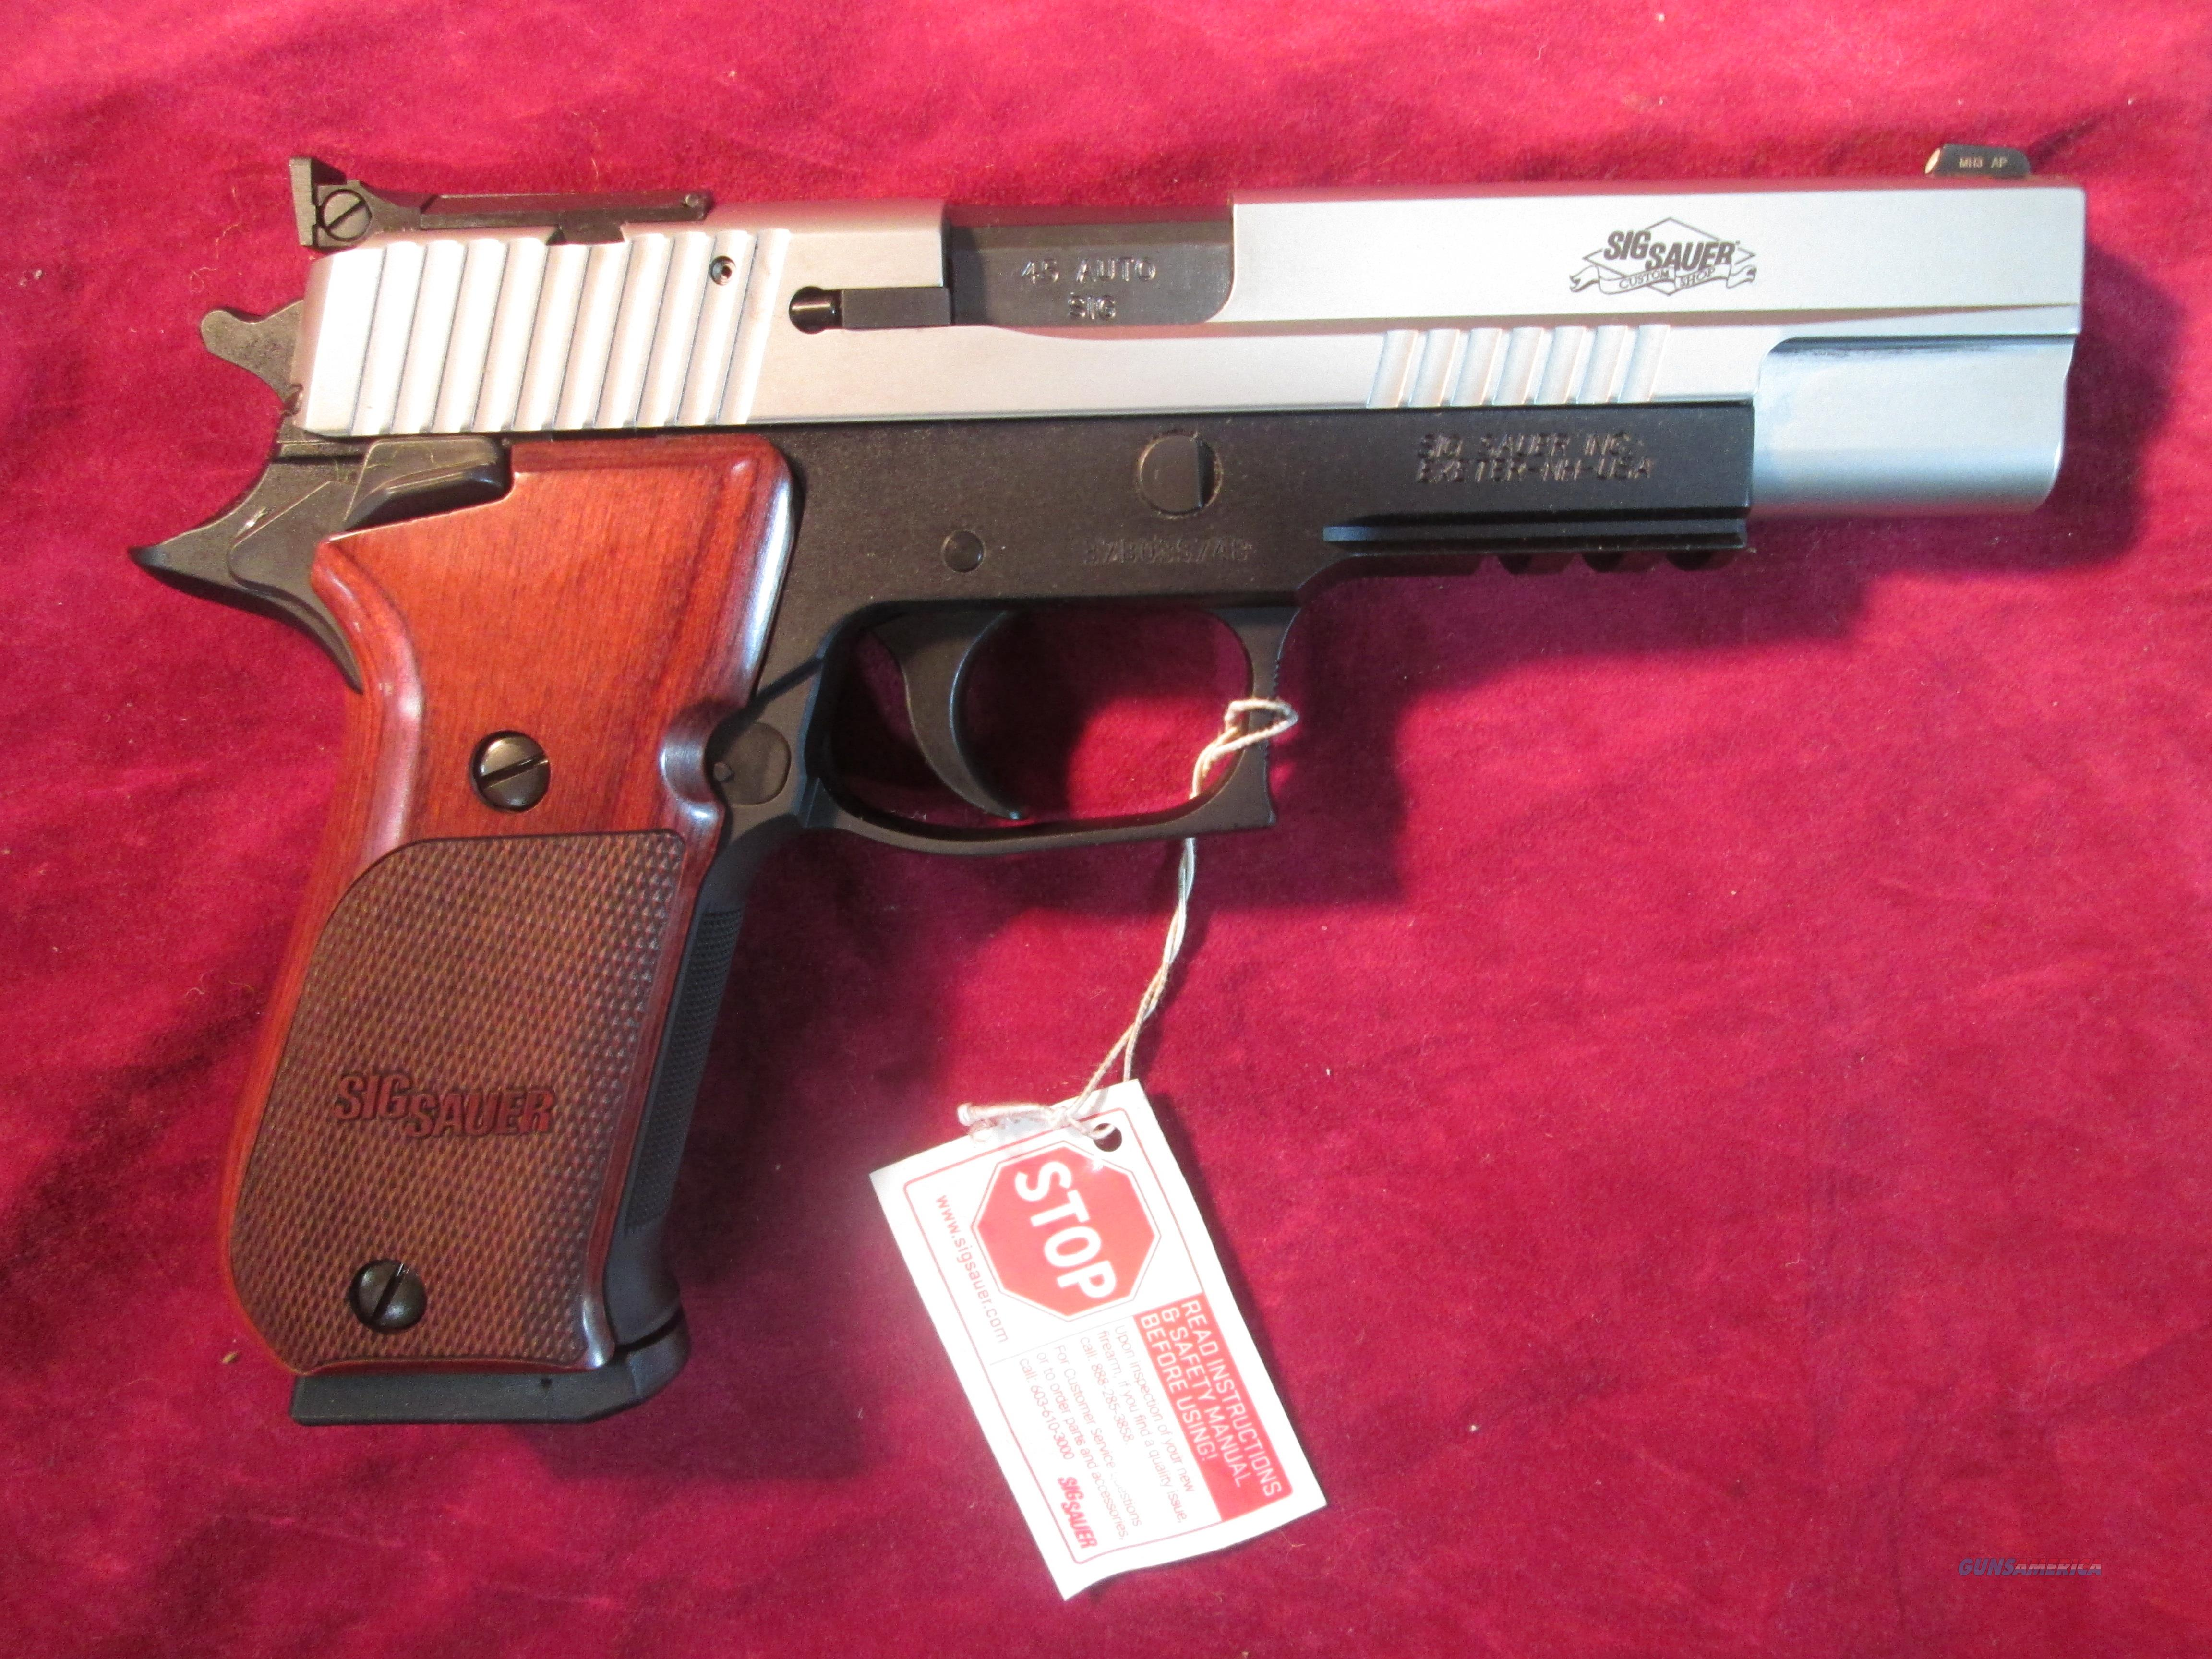 SIG SAUER 220 SUPER MATCH SAO TWO TONE 45ACP NEW (220BR5-45-TAS-SUP)   Guns > Pistols > Sig - Sauer/Sigarms Pistols > P220